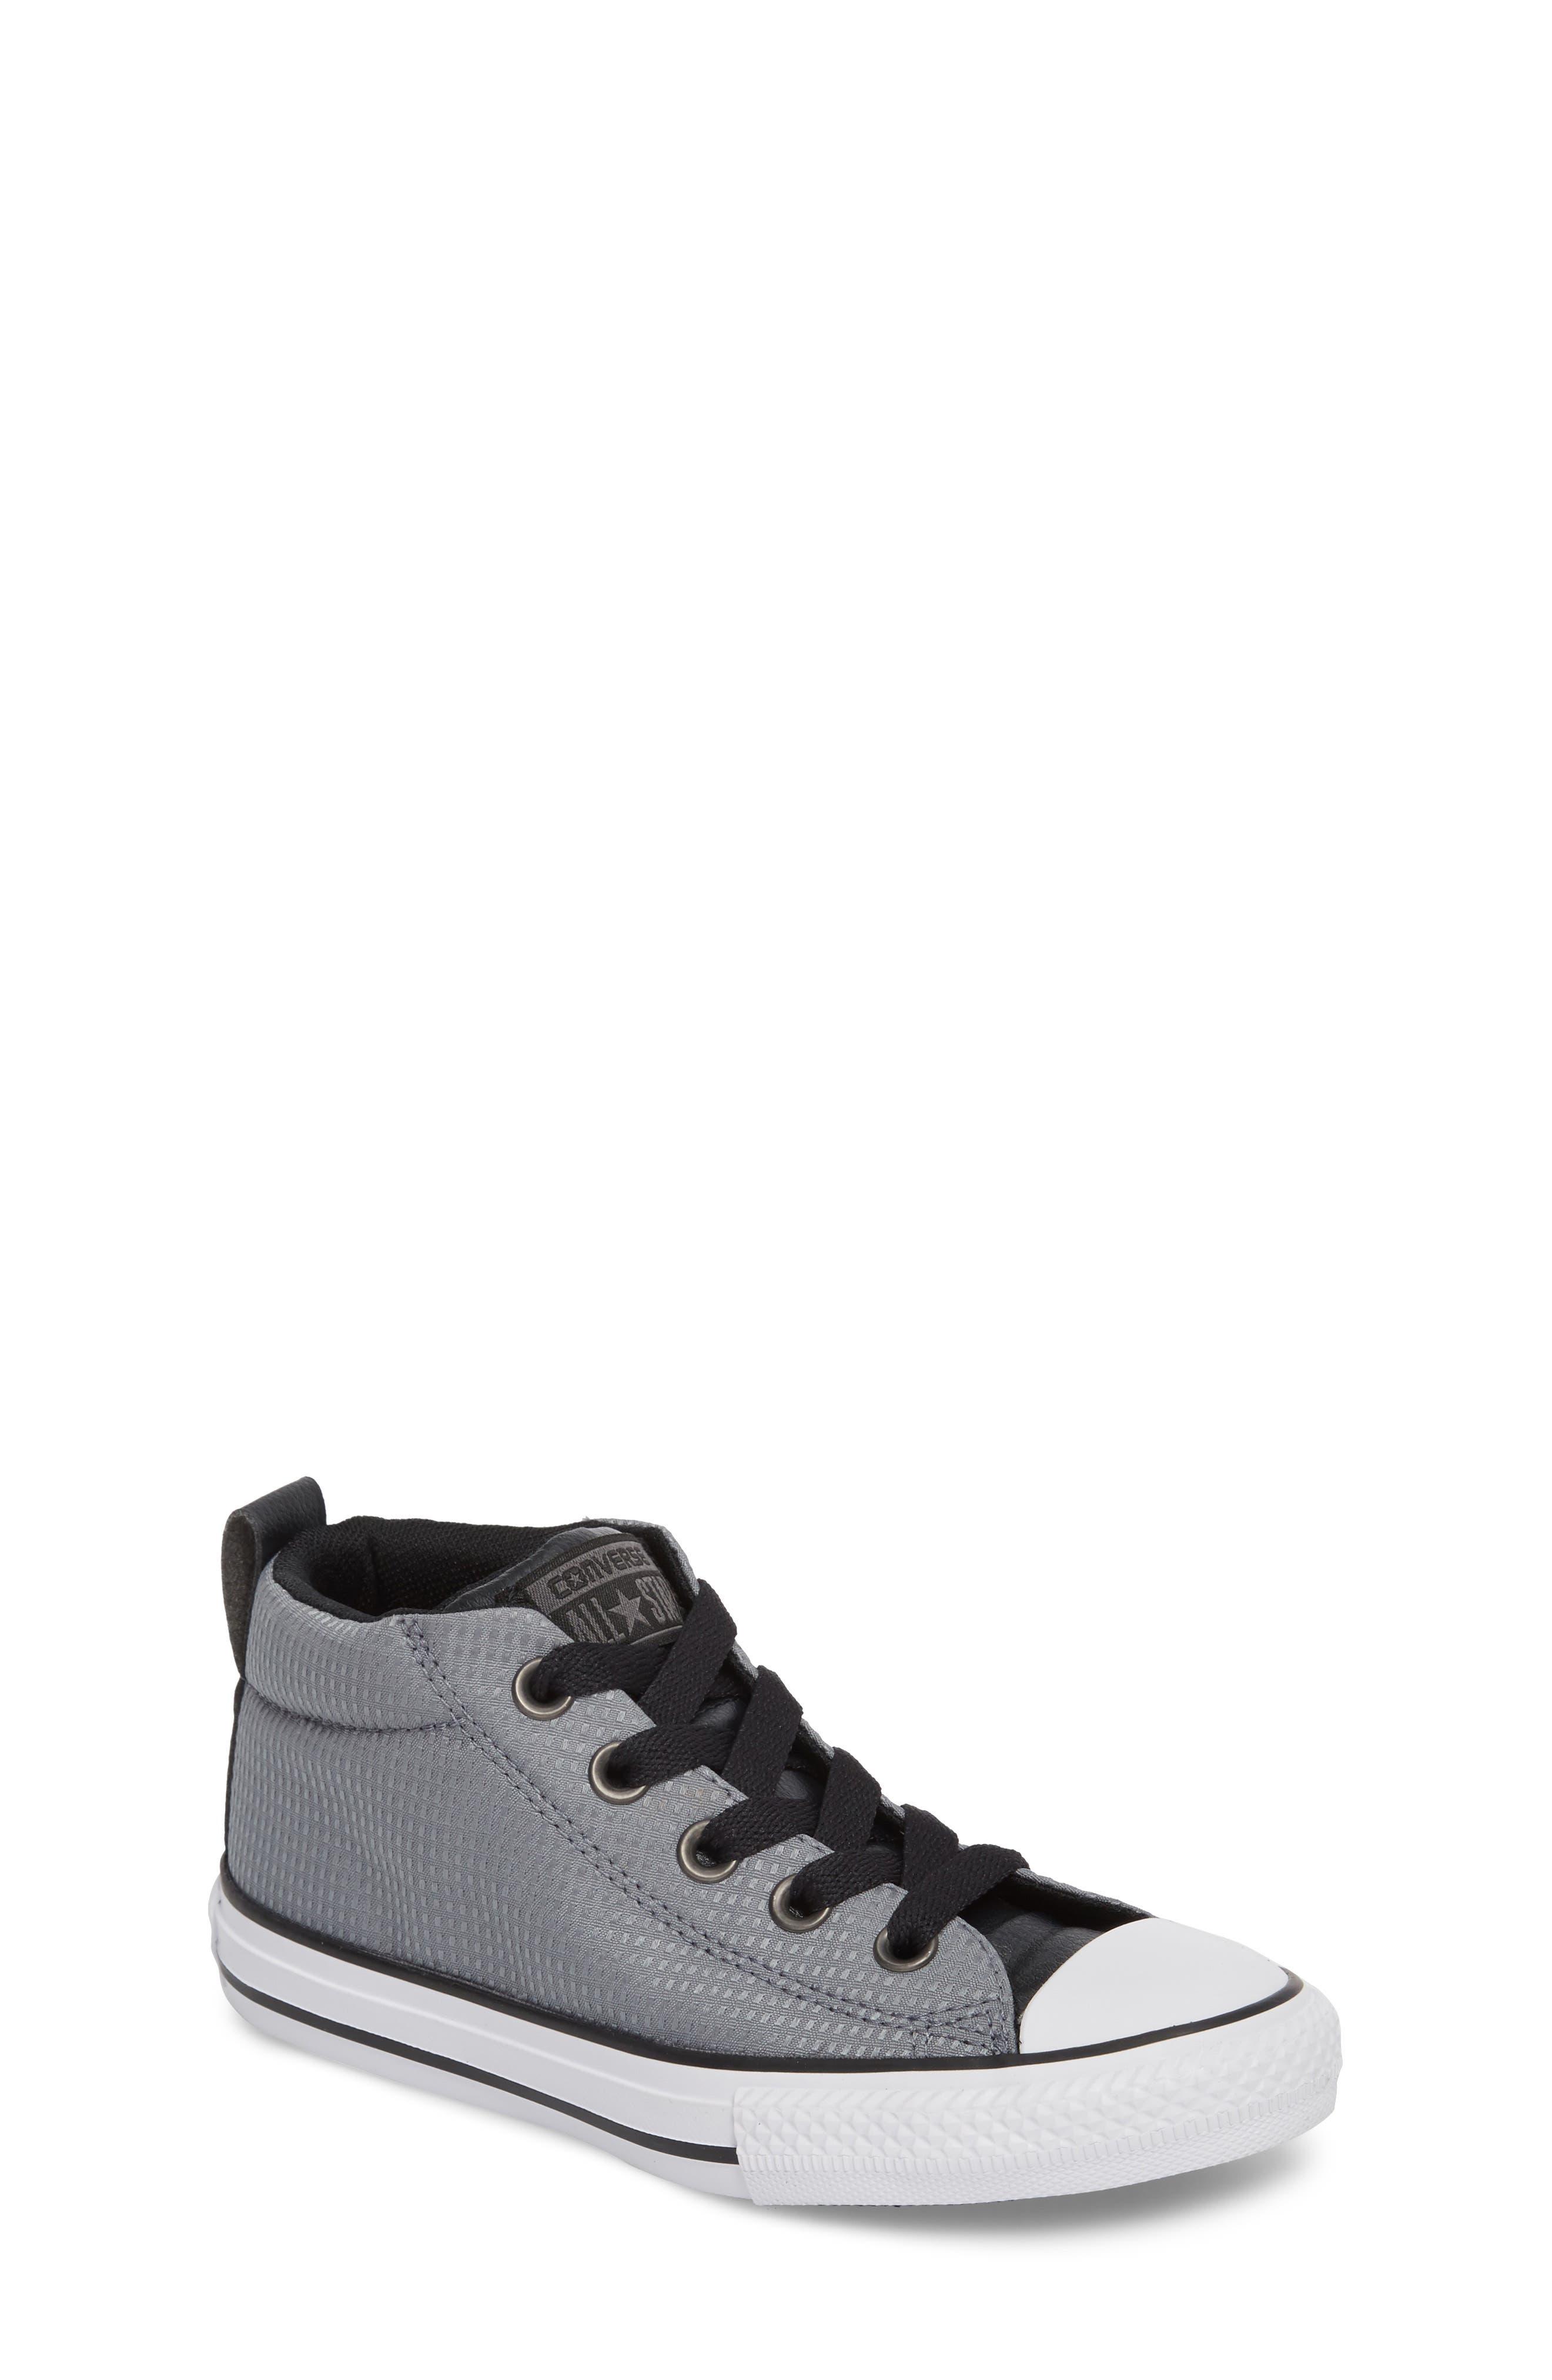 Chuck Taylor<sup>®</sup> All Star<sup>®</sup> Street Mid Backpack Sneaker,                         Main,                         color, 039